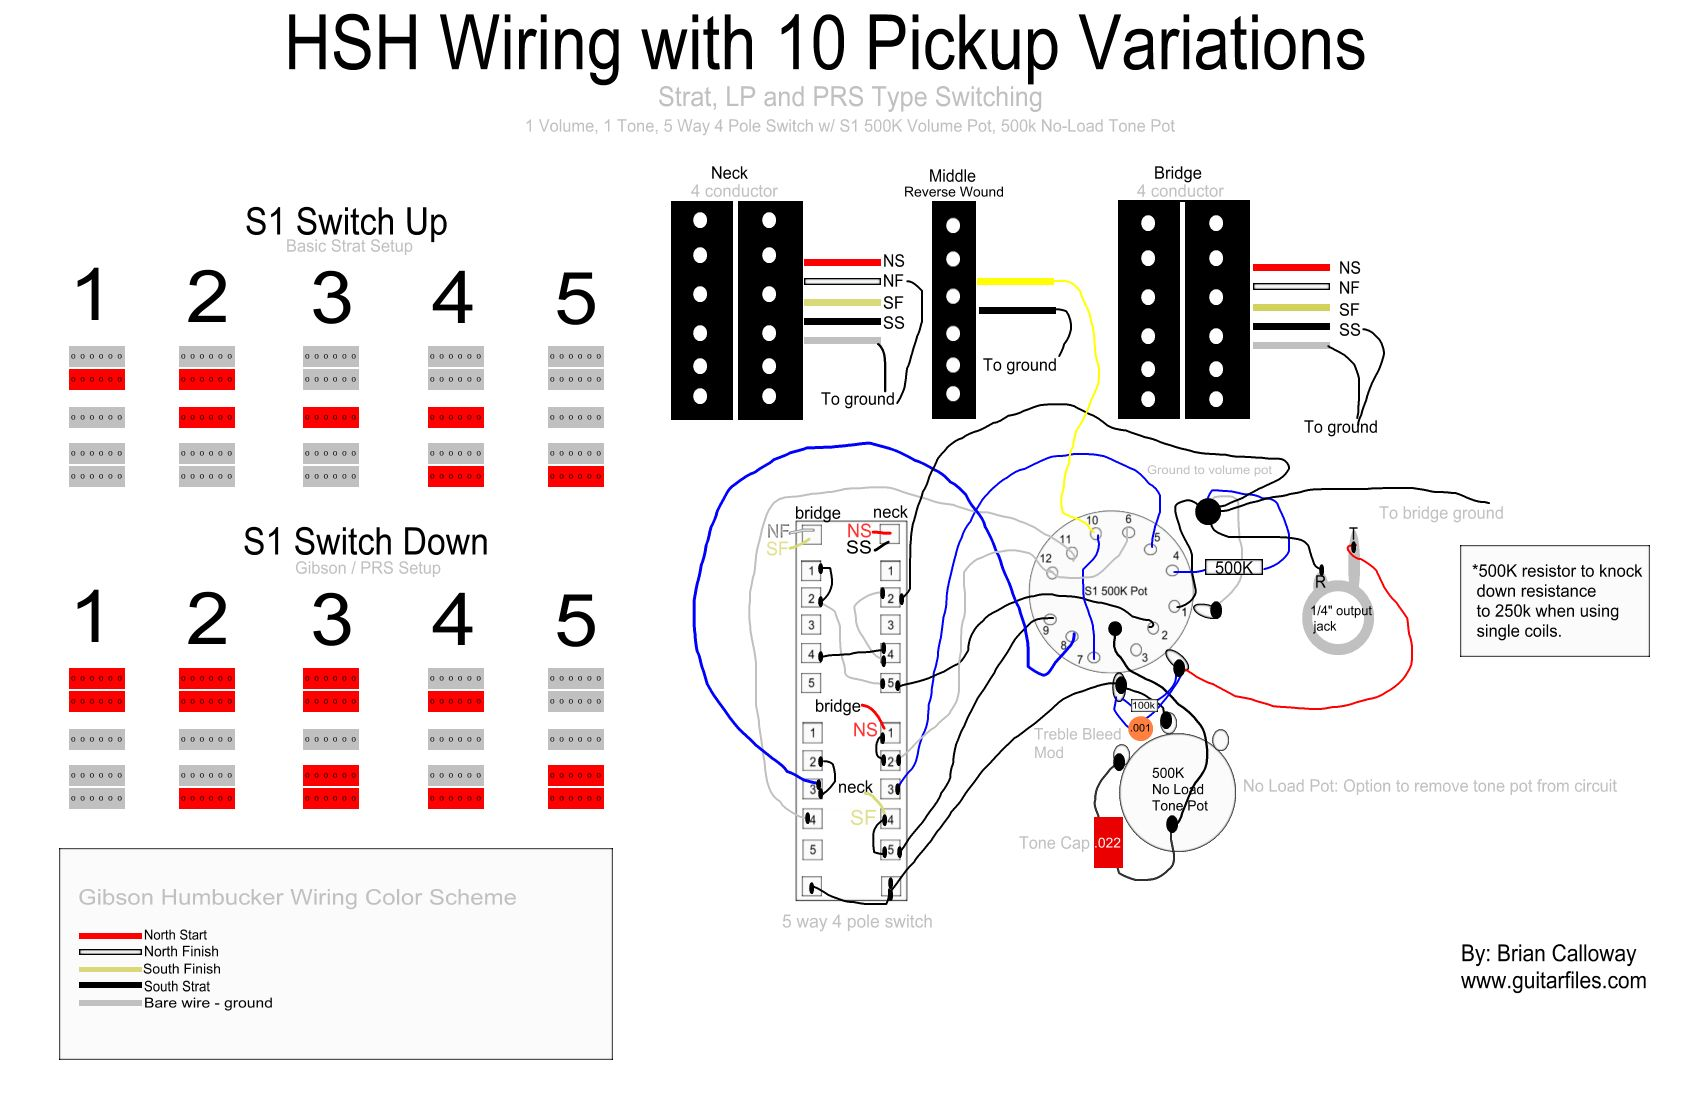 Guitar System Wiring Diagram Expert Schematics Les Paul For A Further Nervous Brain Hsh 10 Pickup Combinations 4 Pole Switch And S1 Ibanez Diagrams